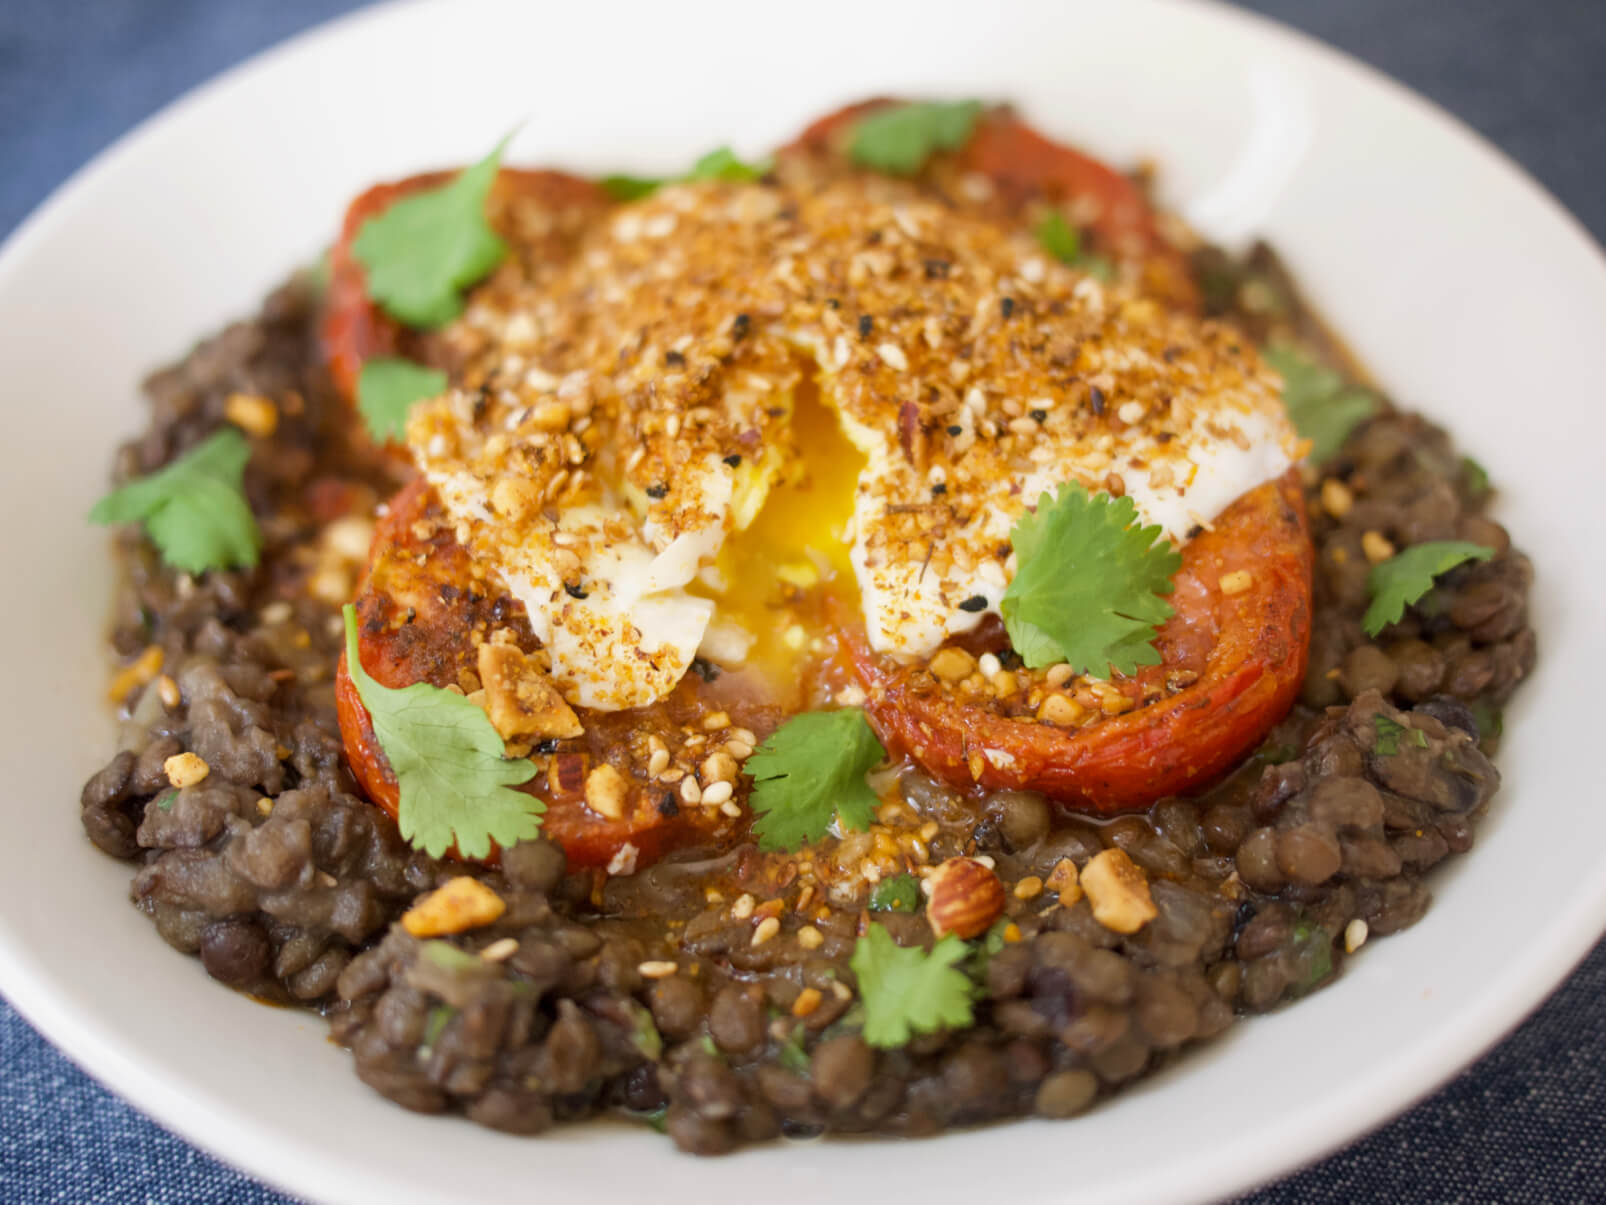 Harissa-Roasted Tomatoes with Lentils, Poached Eggs, and Dukkah